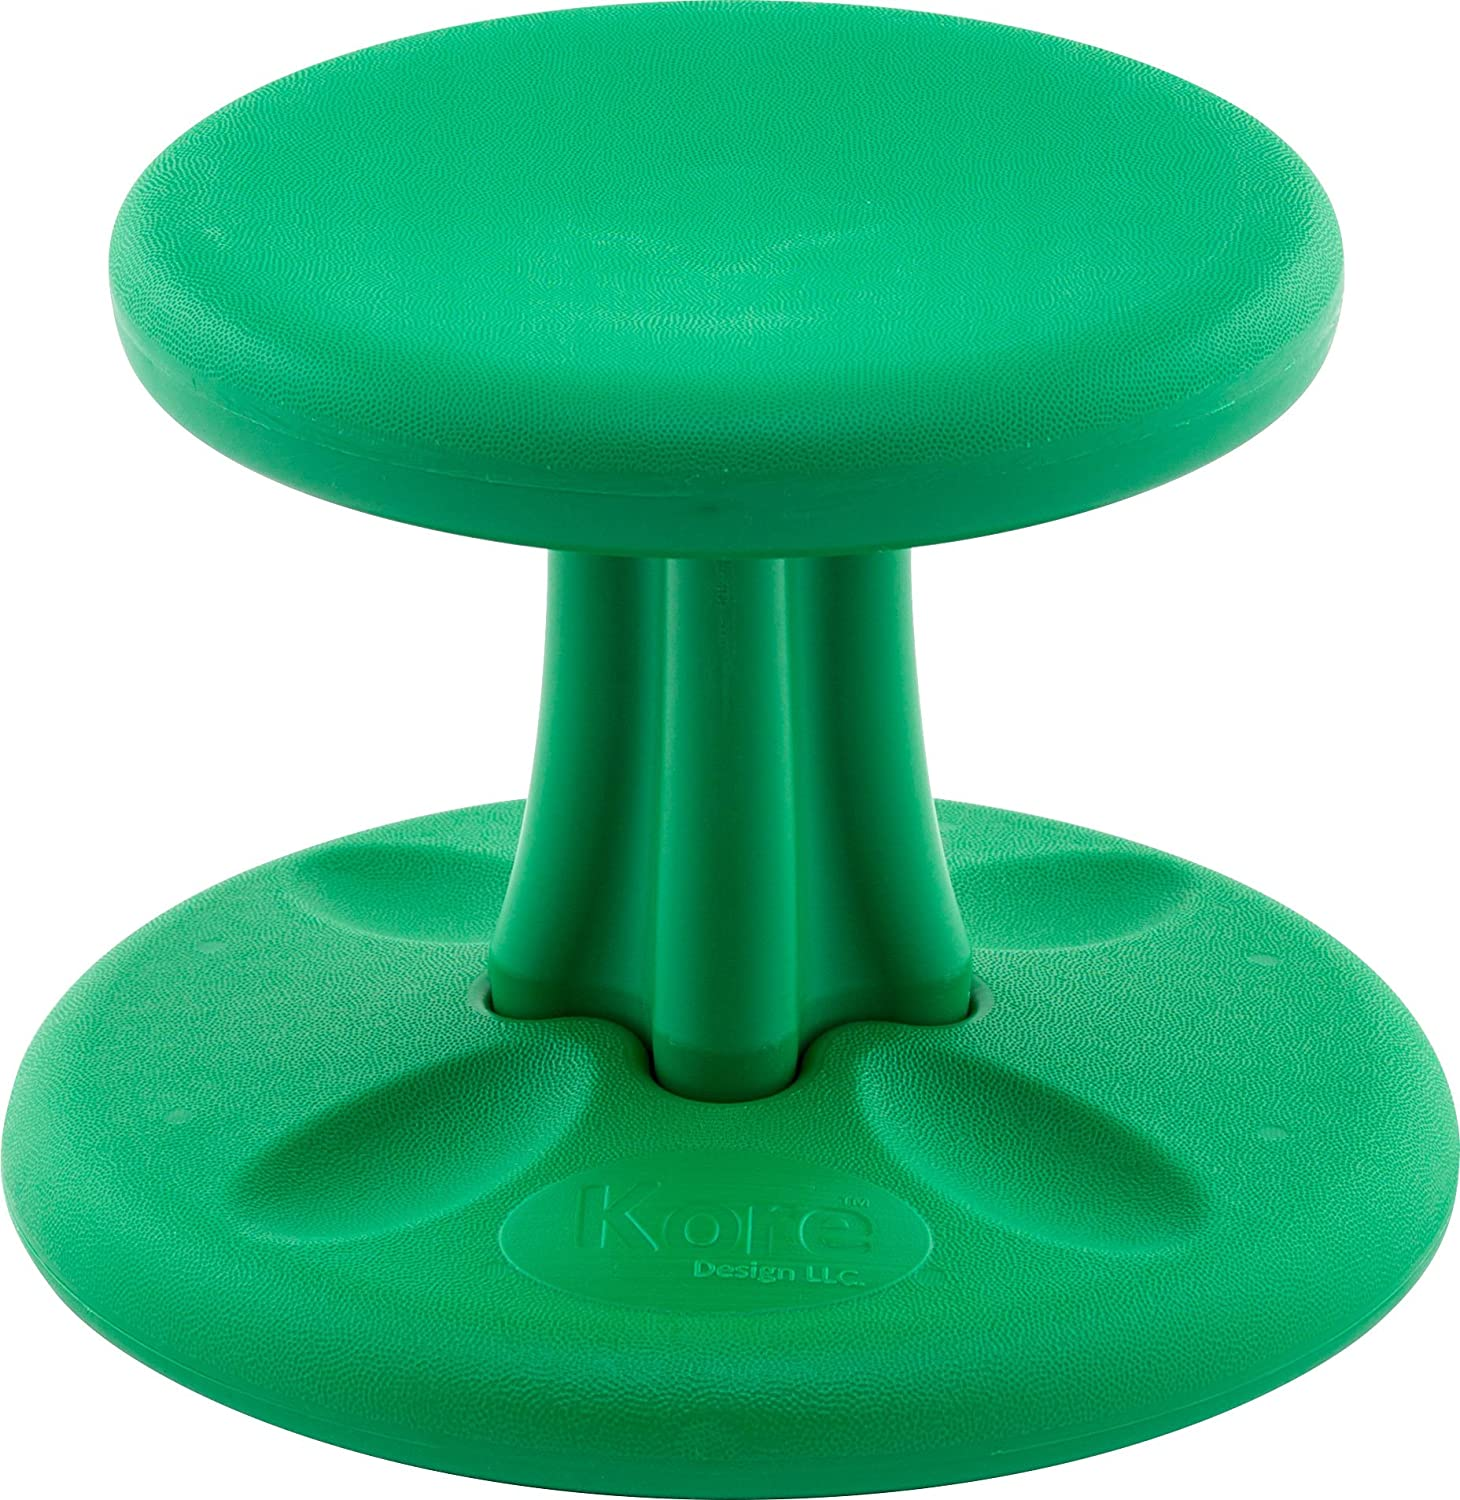 Purple Flexible Seating Stool for Toddlers Age Range 2-3 10in Tall Made in The USA Kore Kids Toddler Wobble Chair